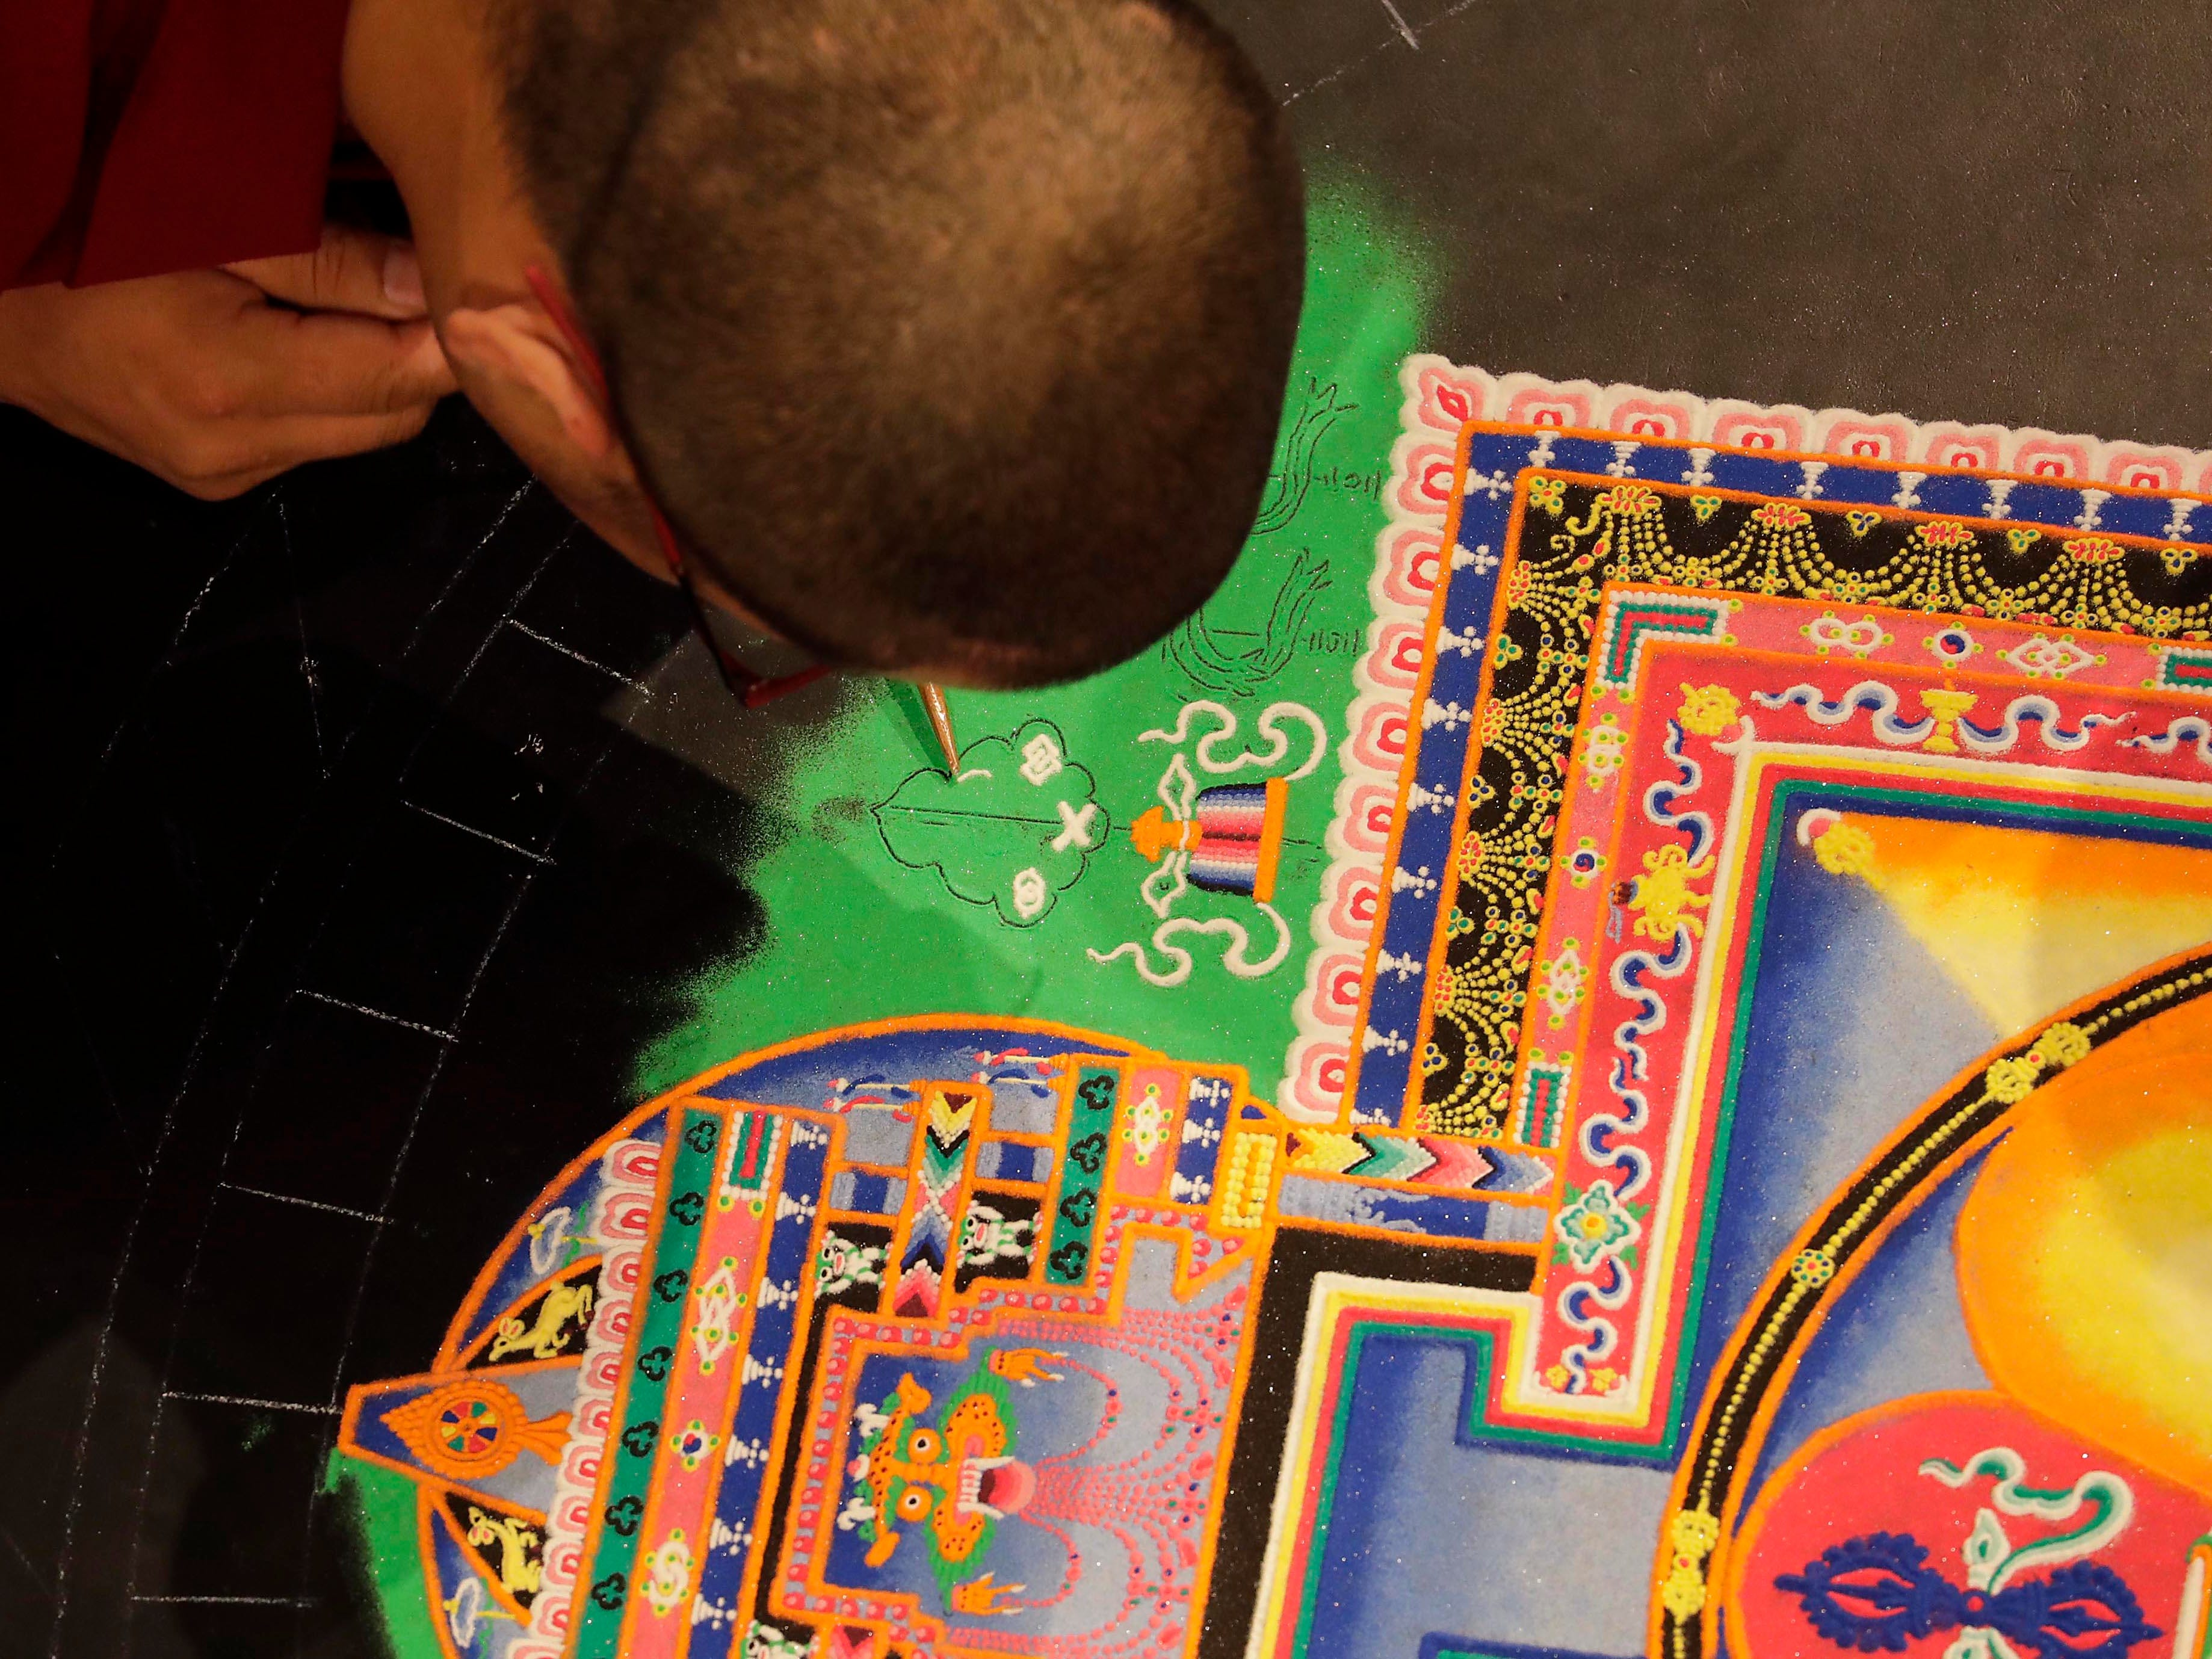 """Lobsang Tsarchin, a Buddhist monk, used a funnel to apply small amounts of sand into a form creating a mandala. Buddhist monks from the Drepung Loseling Monastery, use the colorful sand and use funnels to apply the sand and create a  sand mandala in the center of Milwaukee's City Hall, Thursday, April 11, 2019.   The mandala represents the world in its divine form; on the inner level, they represent a map by which the ordinary human mind is transformed into enlightened mind; and on the secret level, they depict the primordially perfect balance of the subtle energies of the body and the clear light dimension of the mind. The creation of a sand painting is said to effect purification and healing on these three levels.  The display ends with a closing ceremony Friday at 5 p.m. where the sand """"painting"""" will be destroyed and vials of sand shared with attendees. For more information go to www.earlymusicnow.org"""